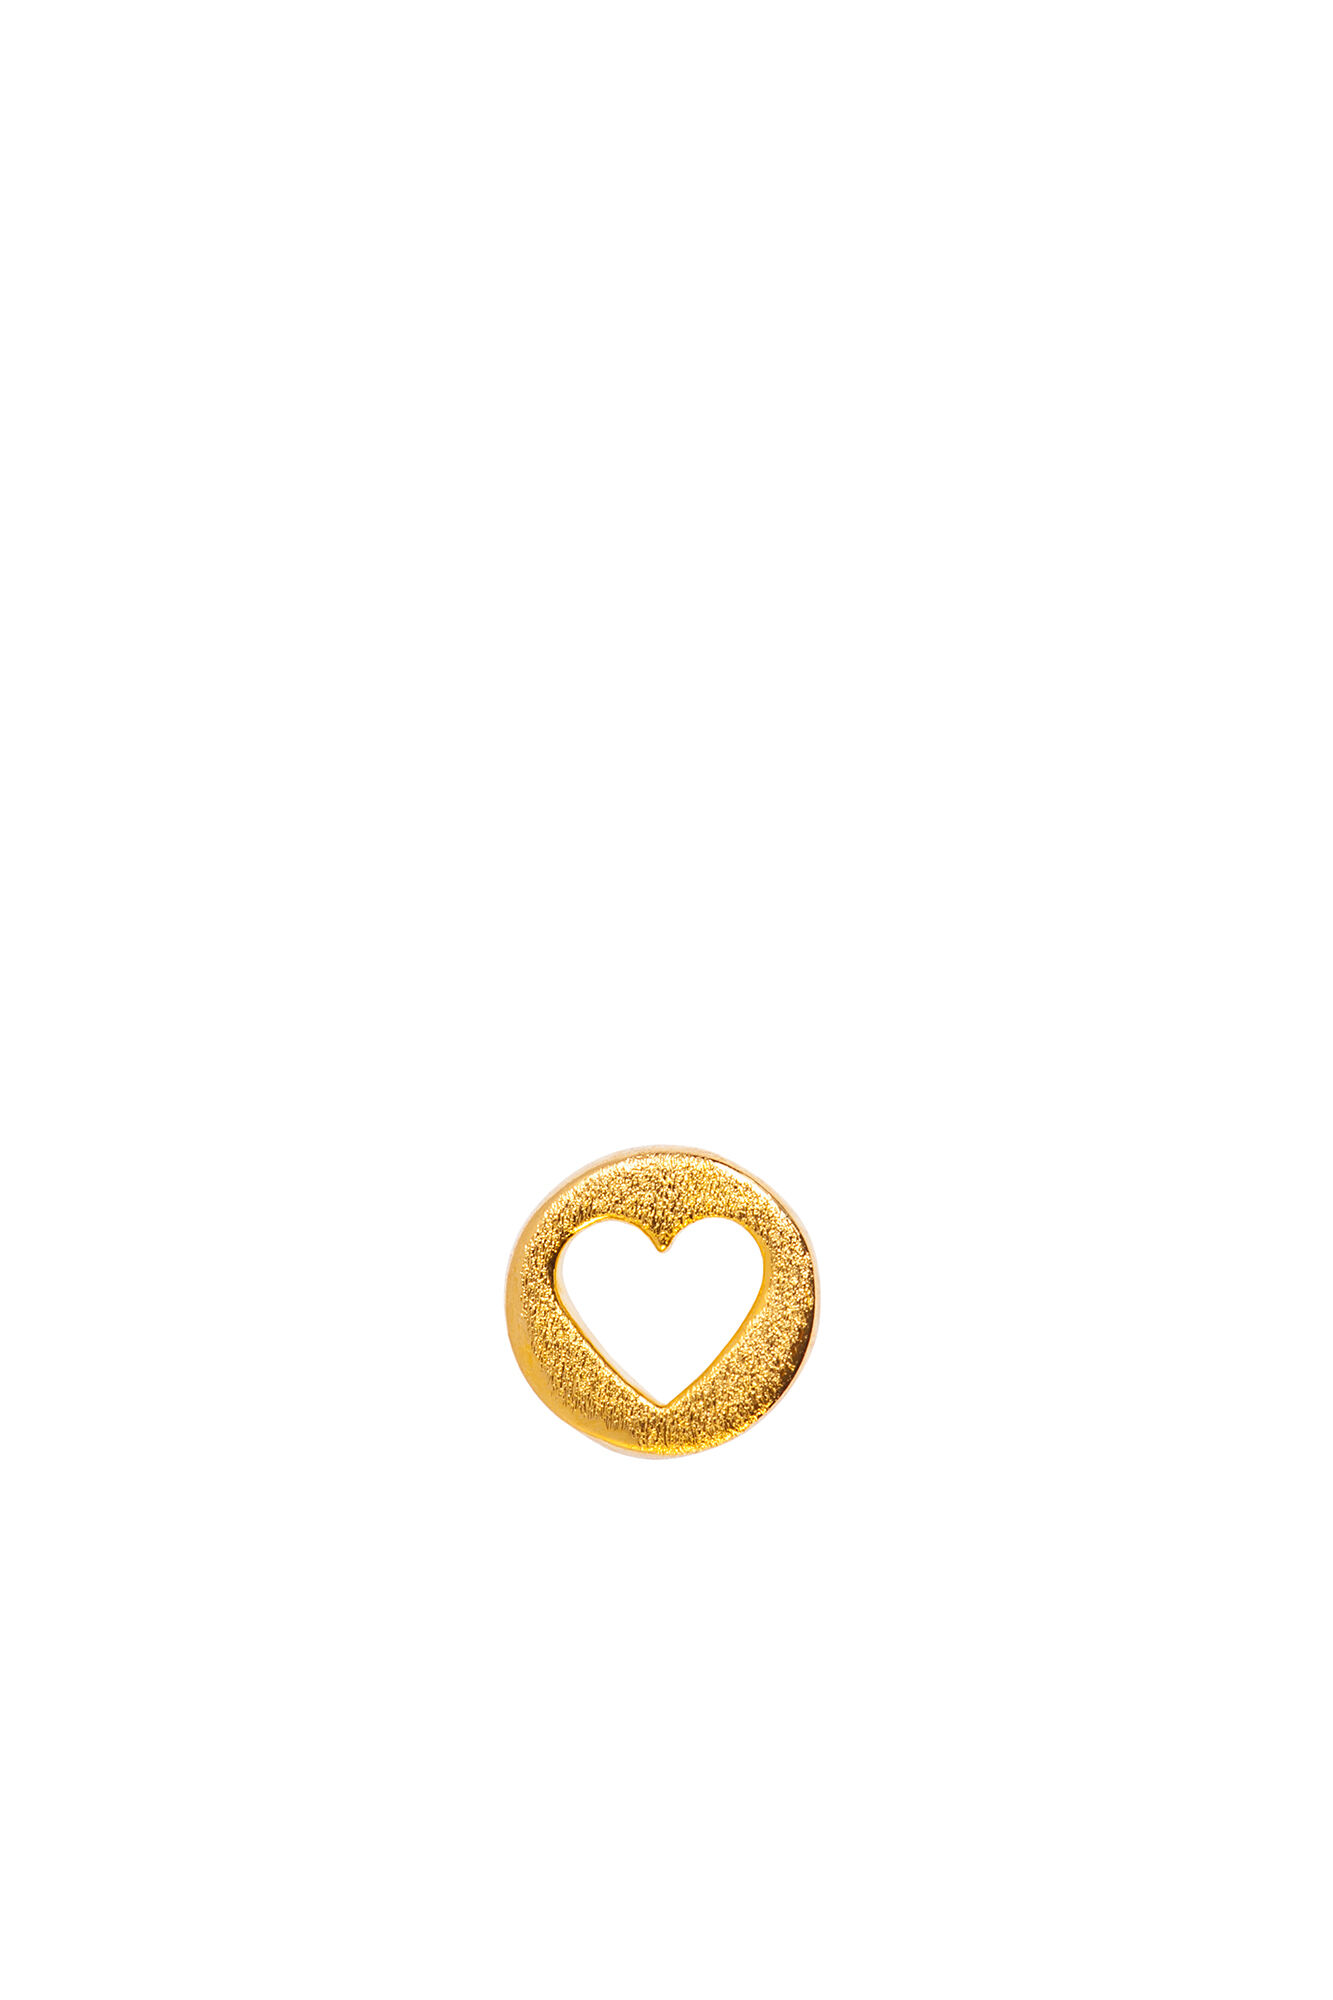 Cut Out Heart Ear LULUE199, GOLD PLATED